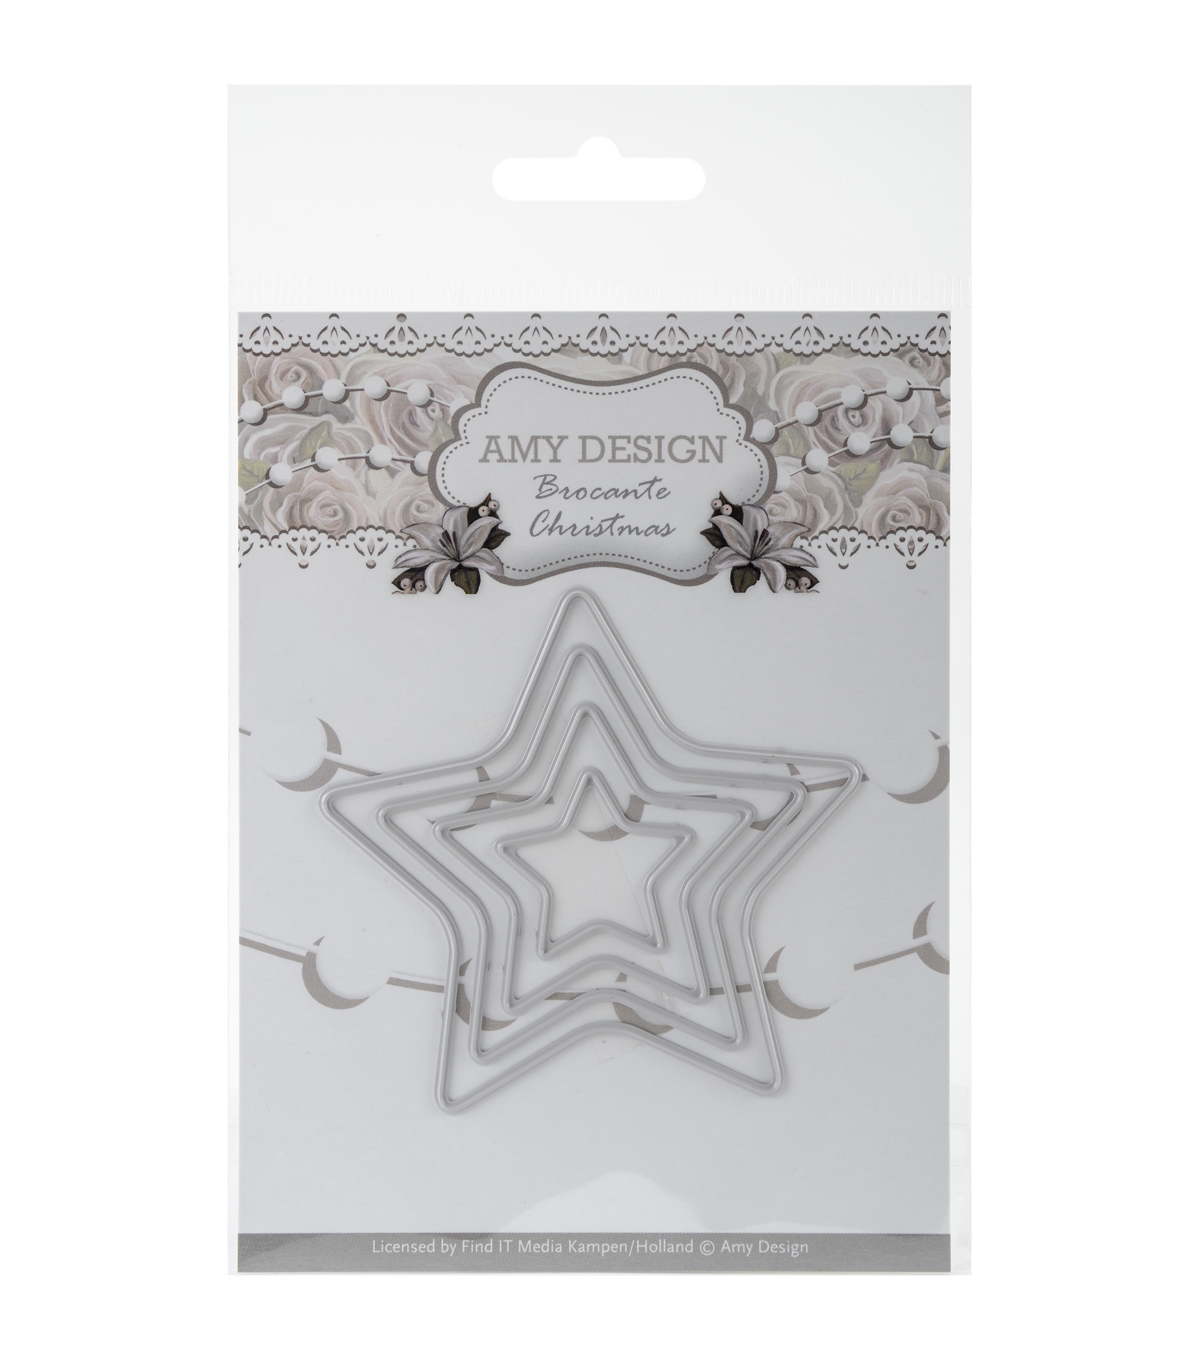 Amy Design Brocante Christmas Die-Mini Star Frames